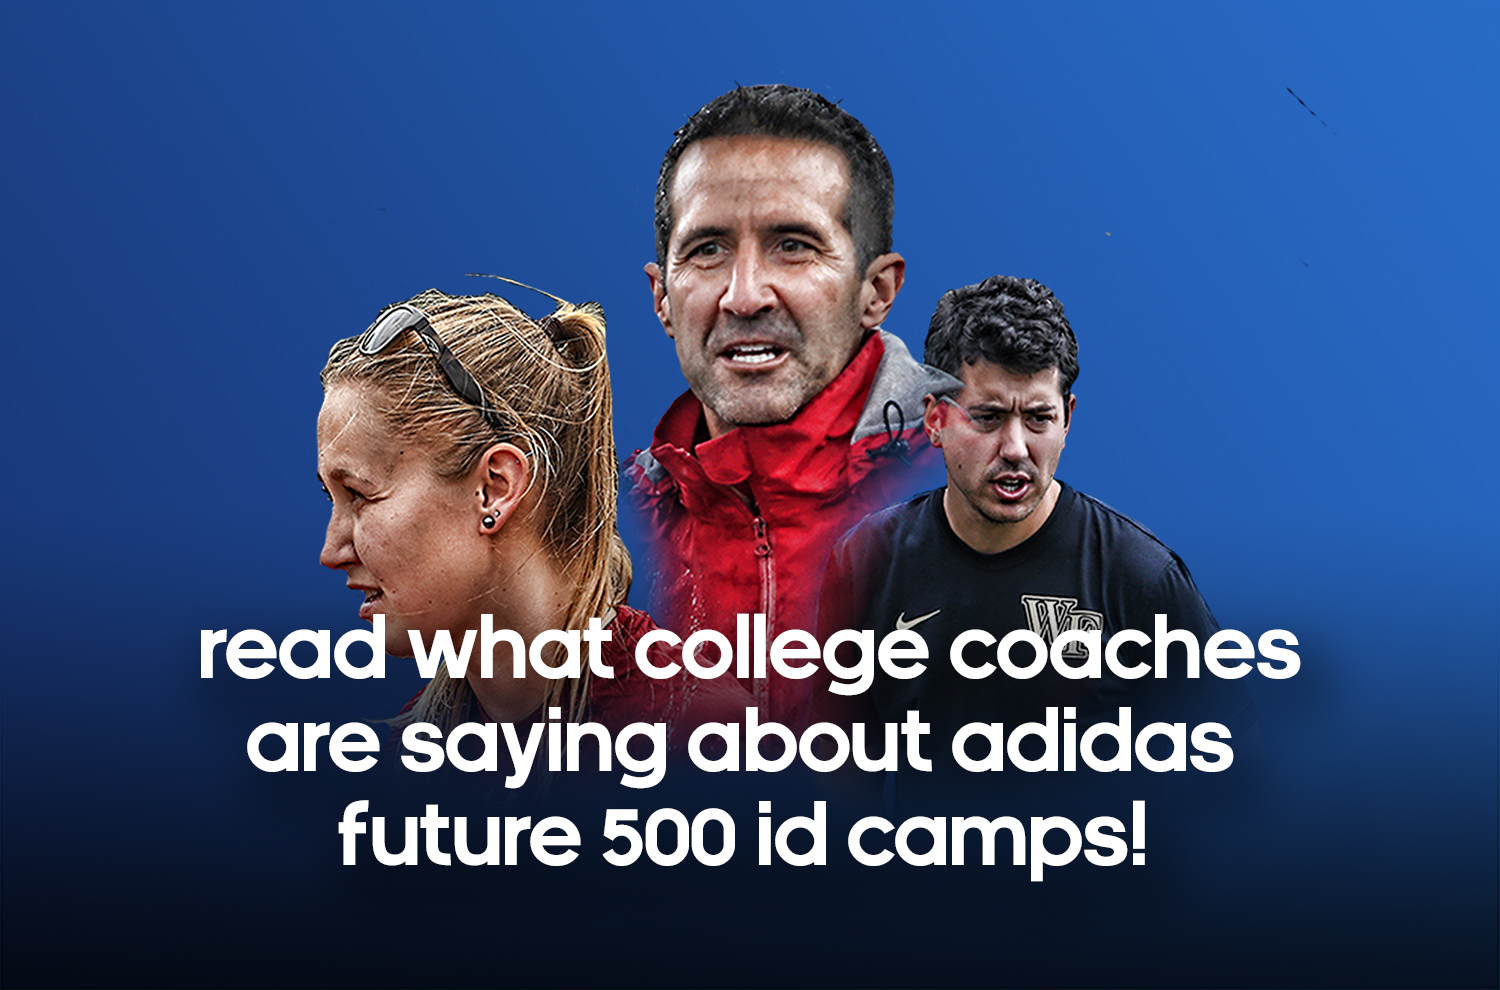 soccer camps picture with college coaches 2